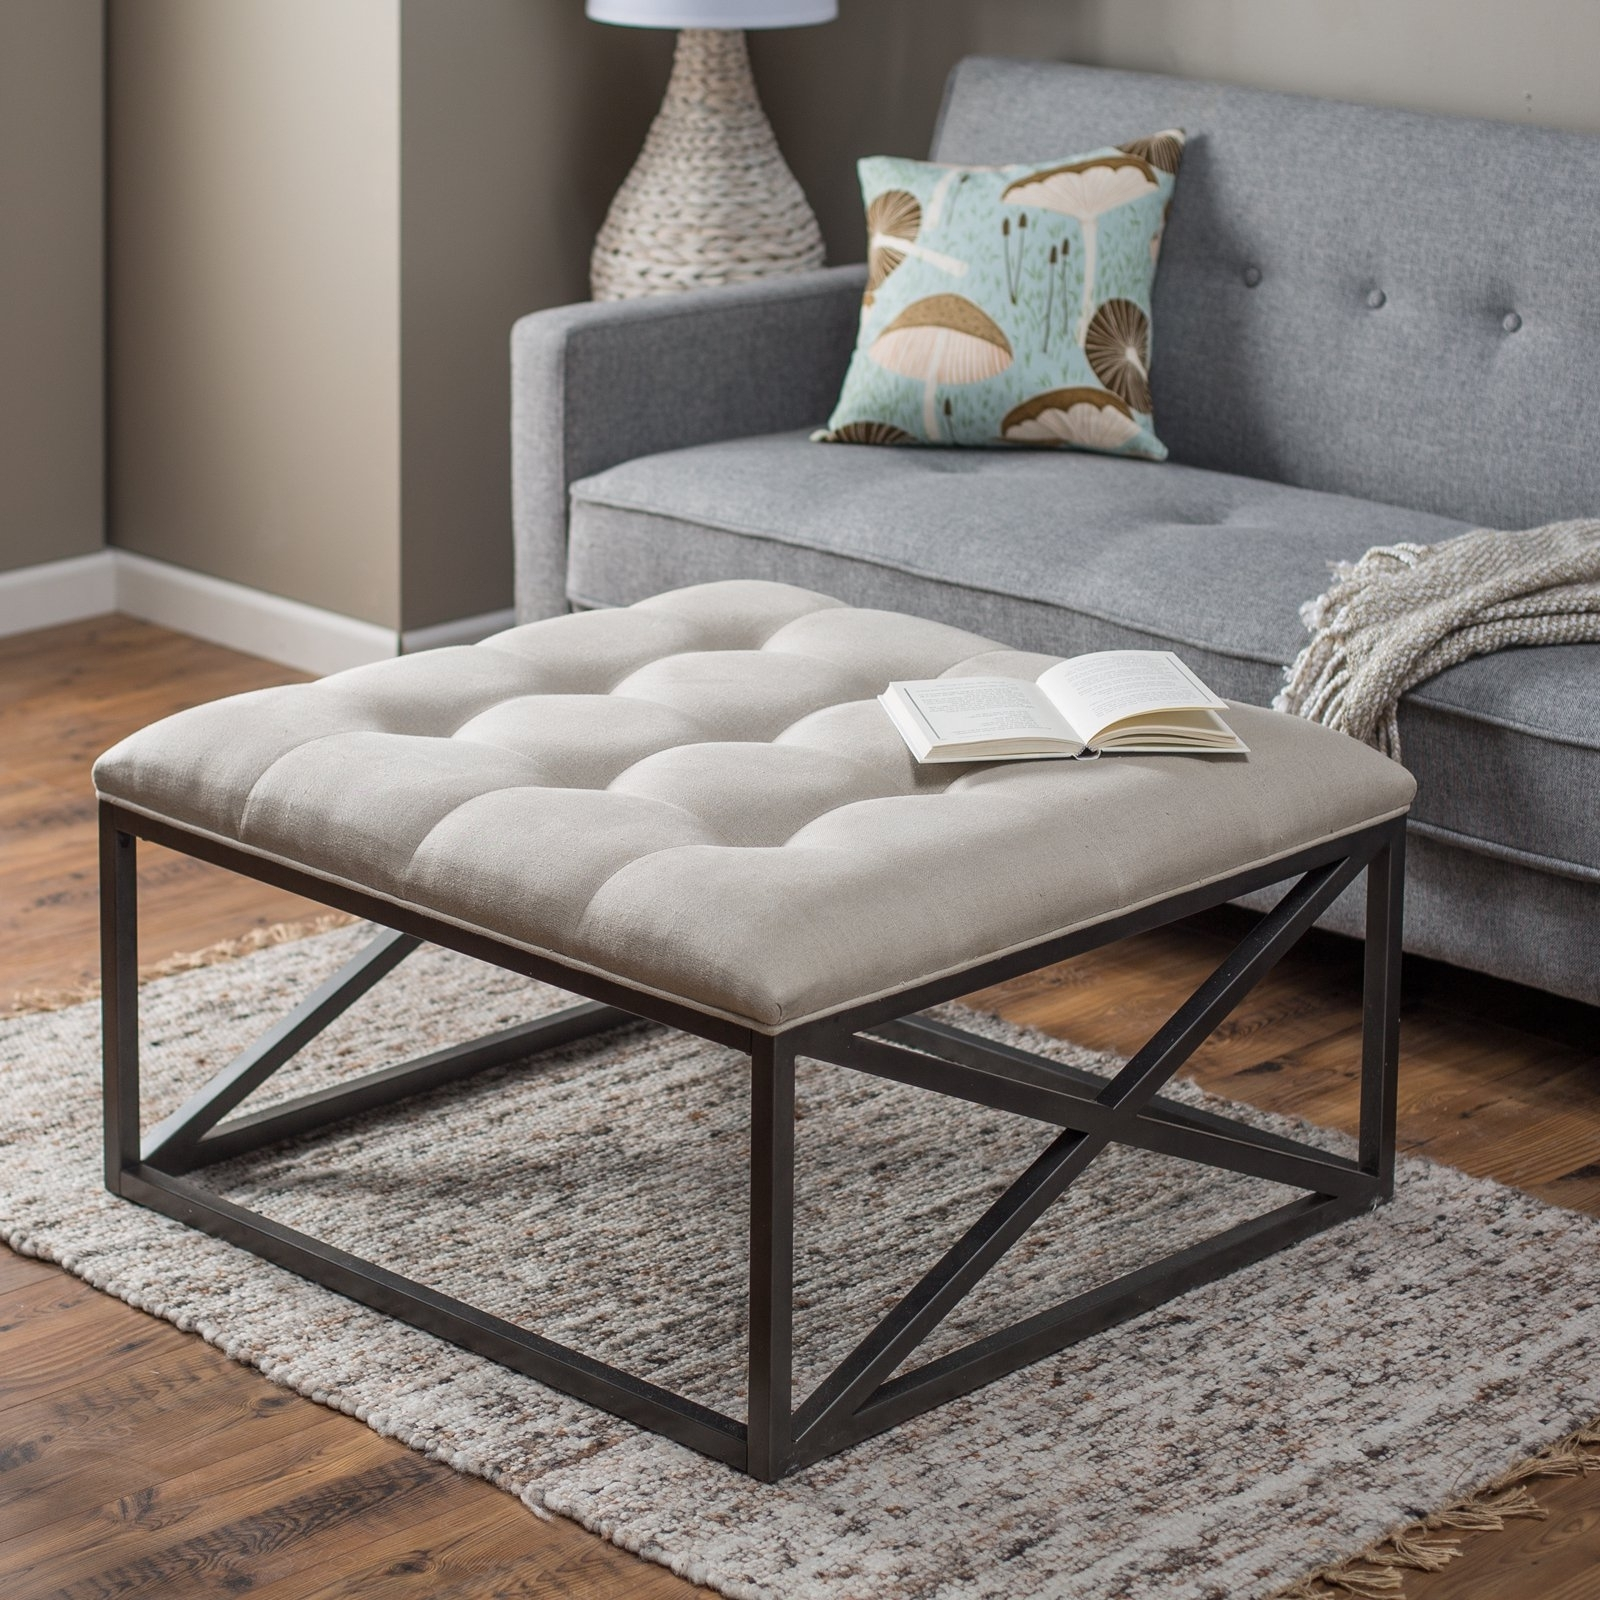 Picture of: Luxurious Ottoman Coffee Table